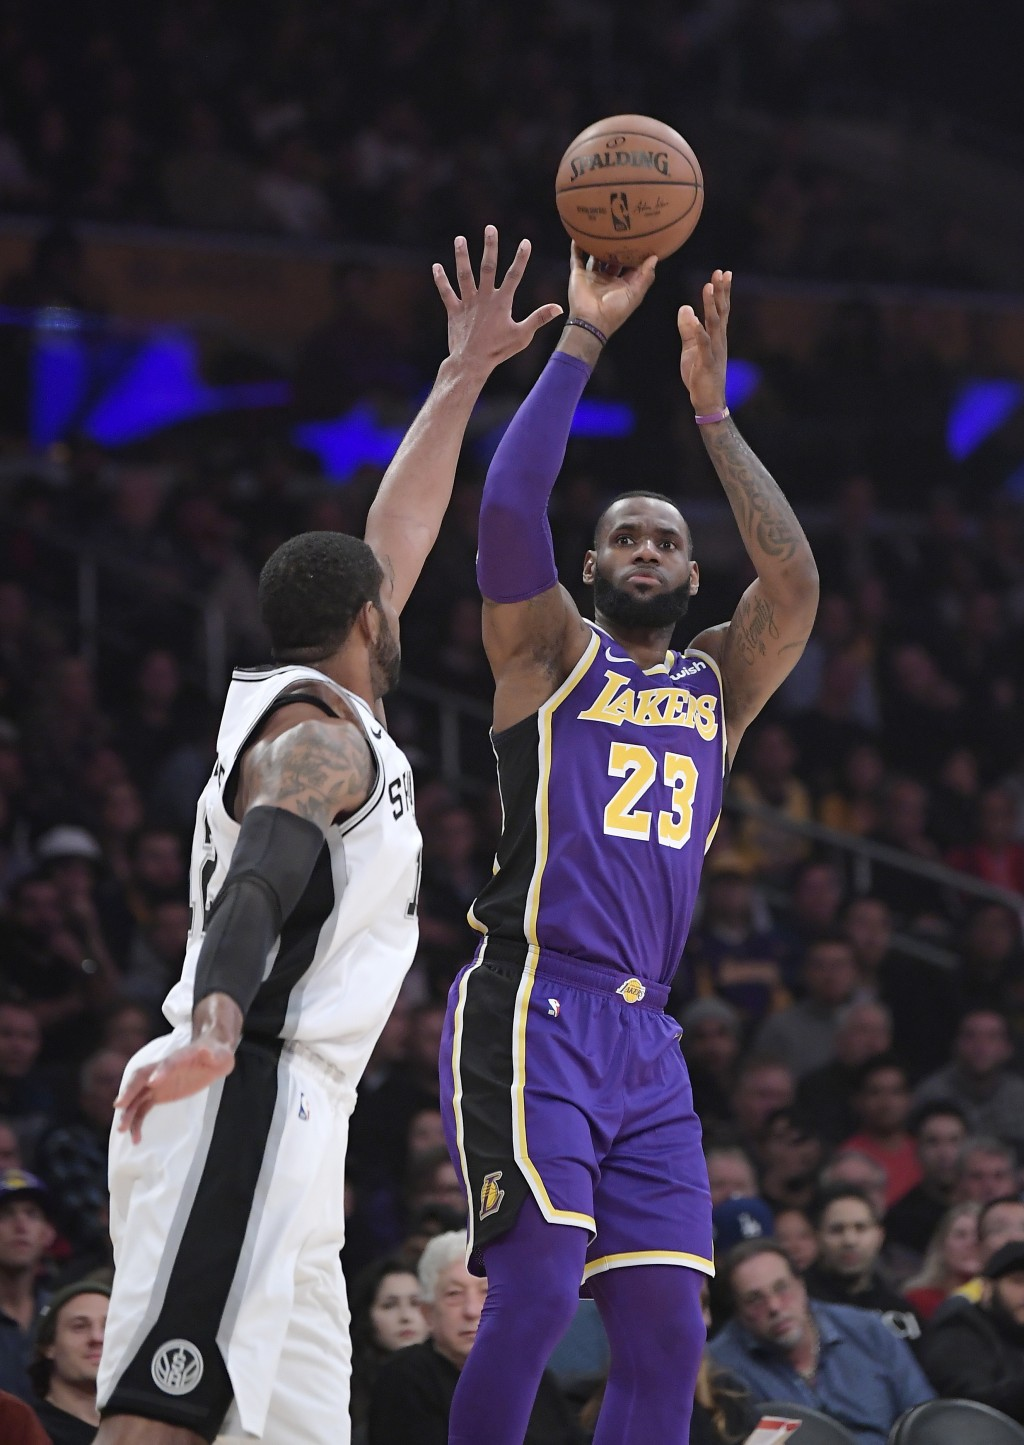 Los Angeles Lakers forward LeBron James, right, shoots as San Antonio Spurs forward LaMarcus Aldridge defends during the first half of an NBA basketba